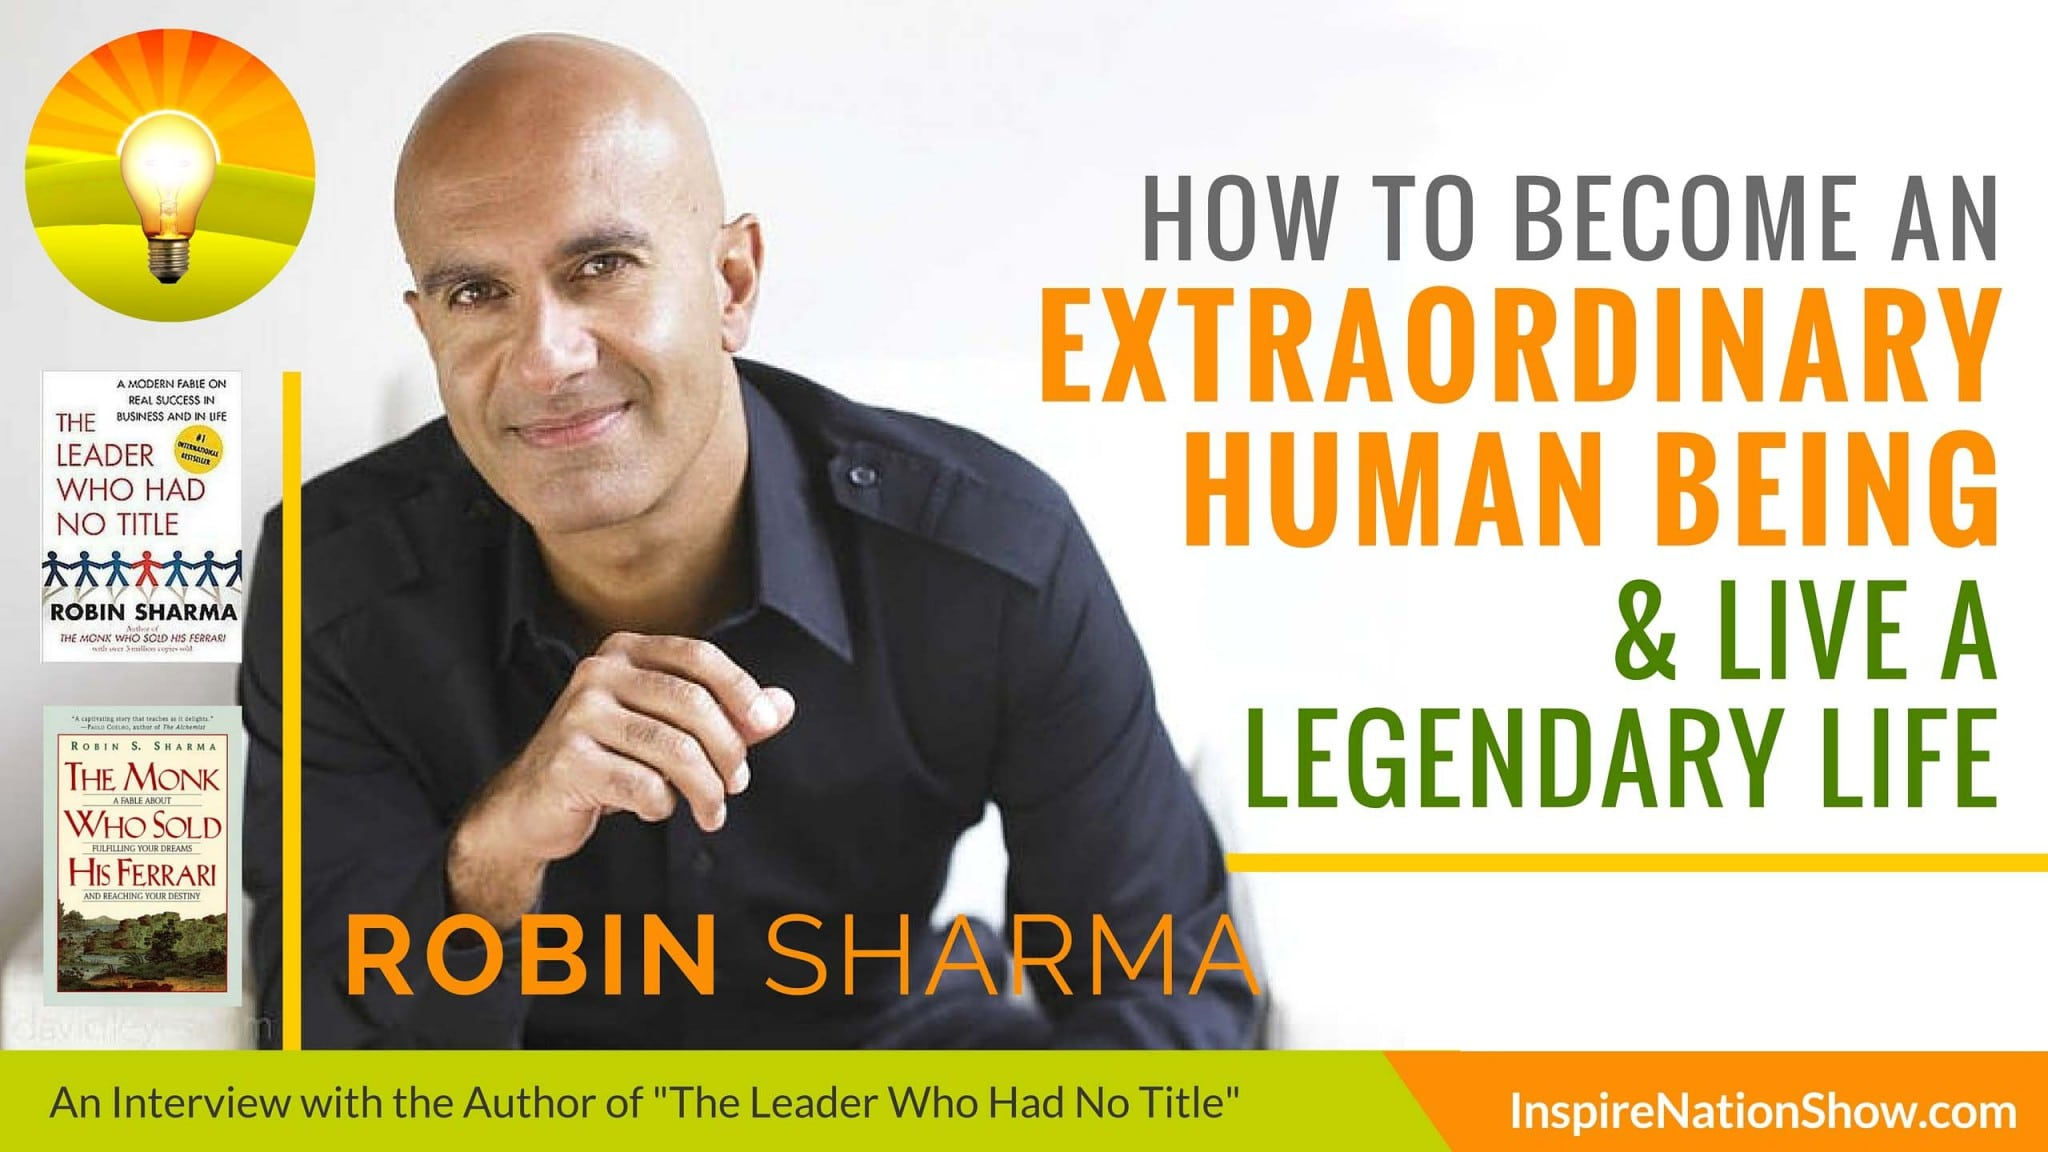 Robin Sharma-Inspire-Nation-Show-podcast-The-Leader-Who-Had-No-Title-The-Monk-Who-Sold-His-Ferrari-extraordinary-human-being-legendary-life-career-self-help